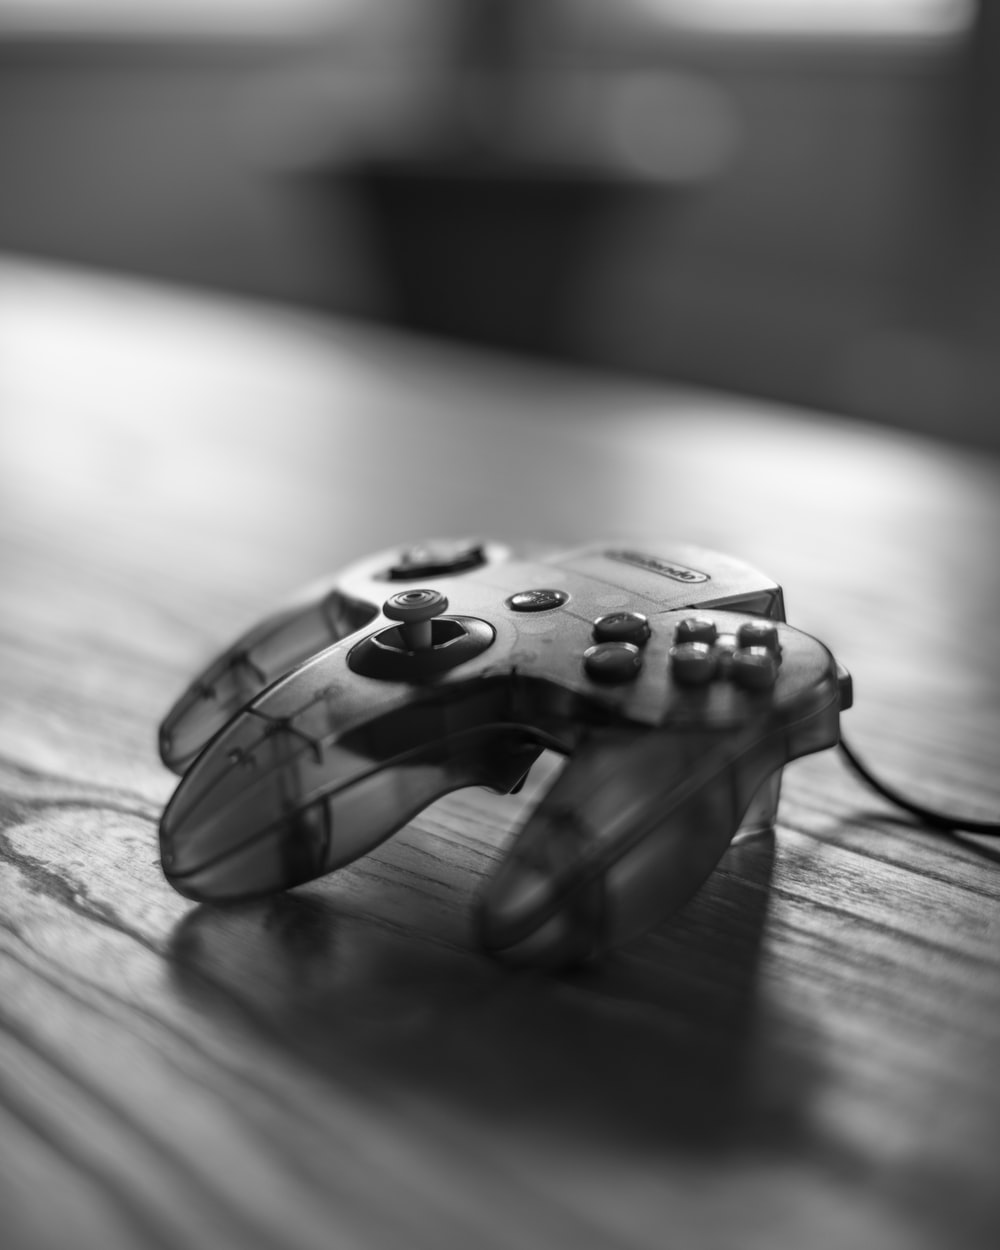 grayscale photo of game controller